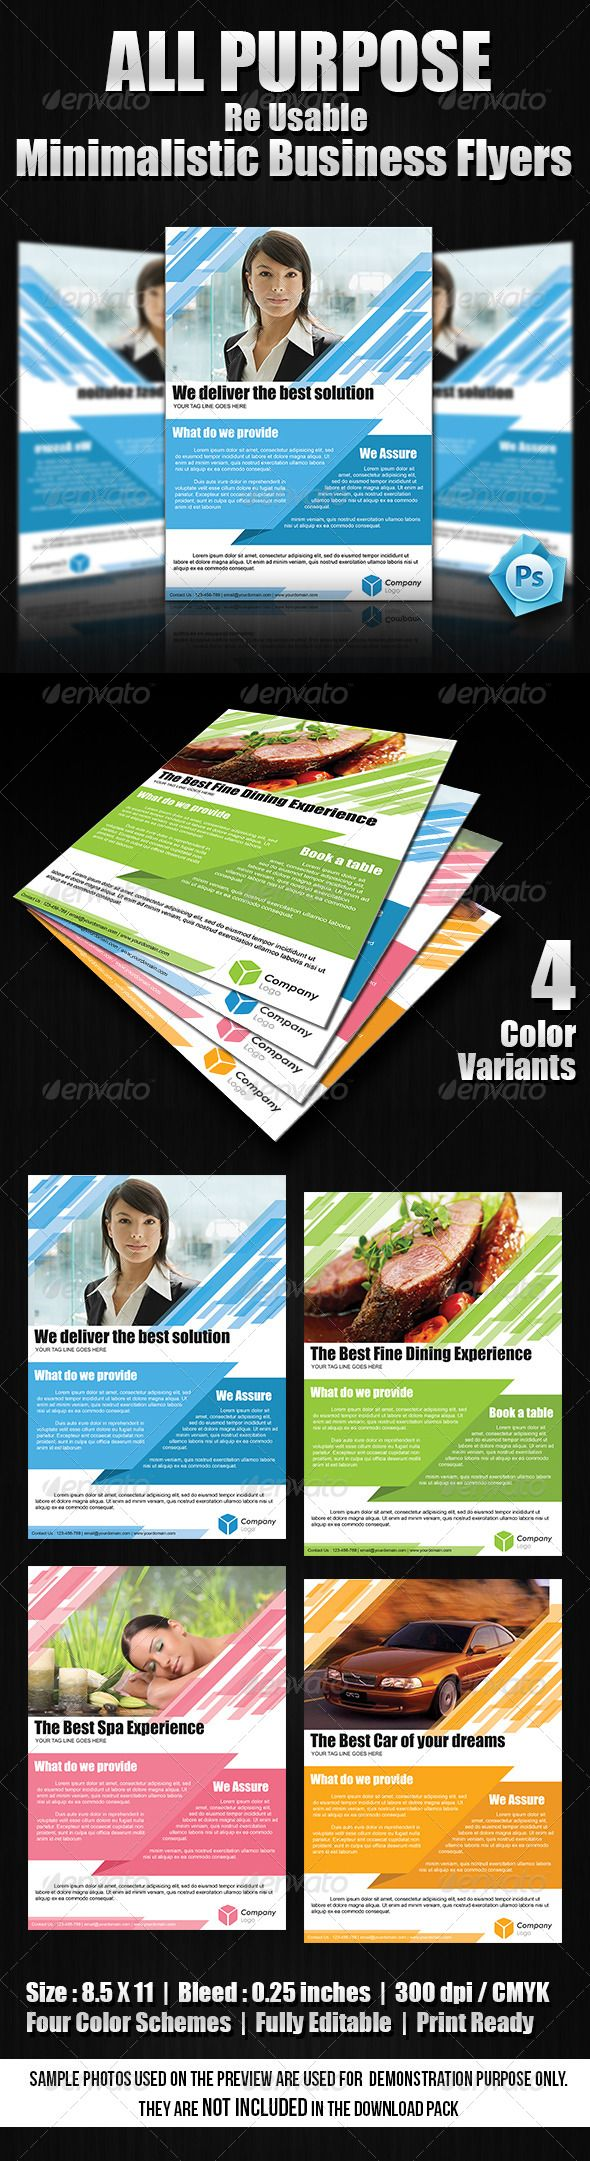 All Purpose Re-Usable Business Flyers